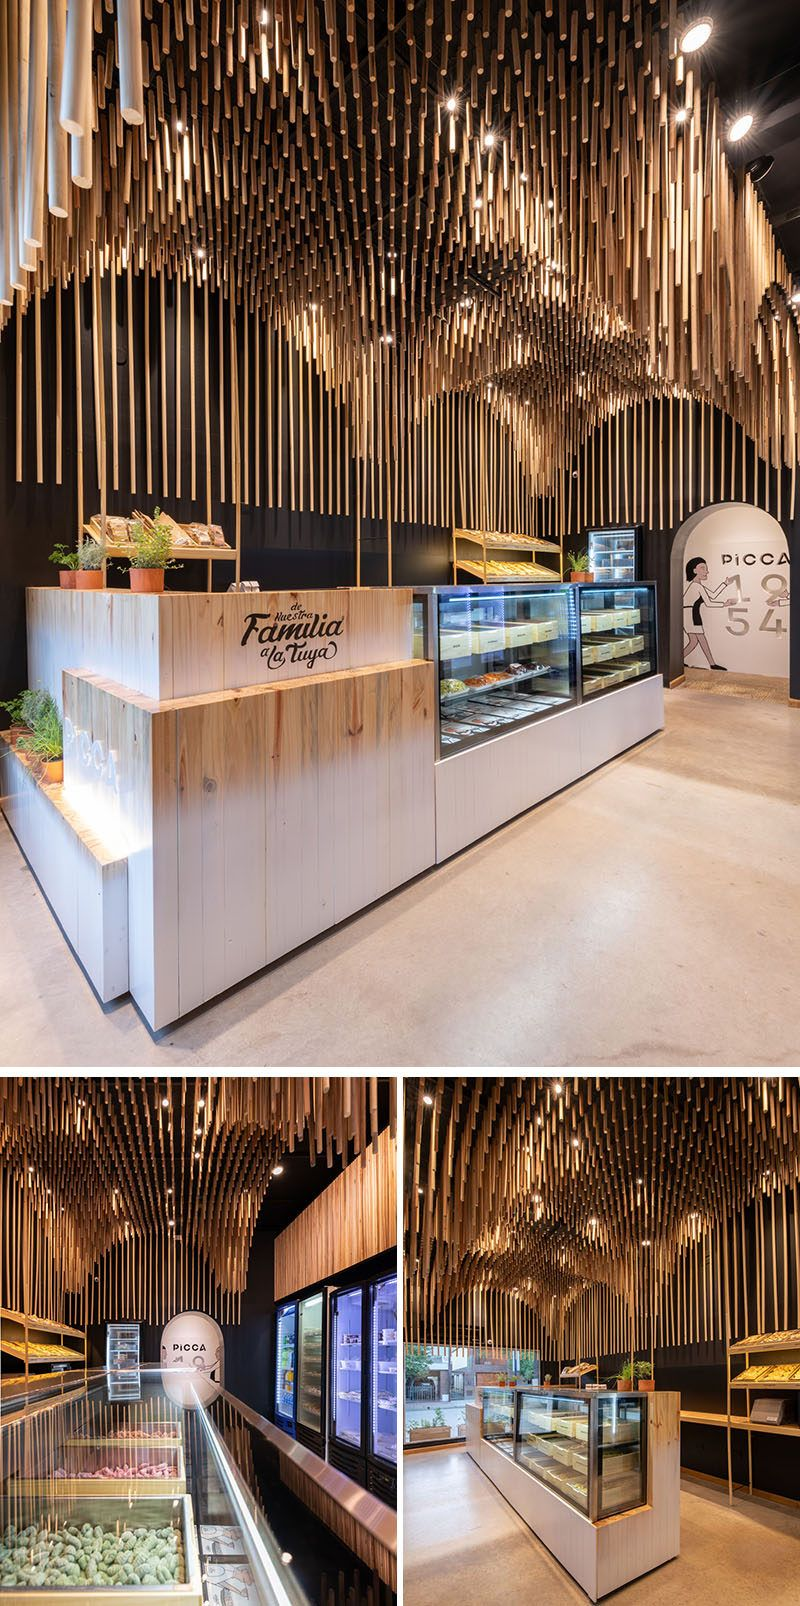 This Ceiling Was Inspired By Pasta | Retail interior ...